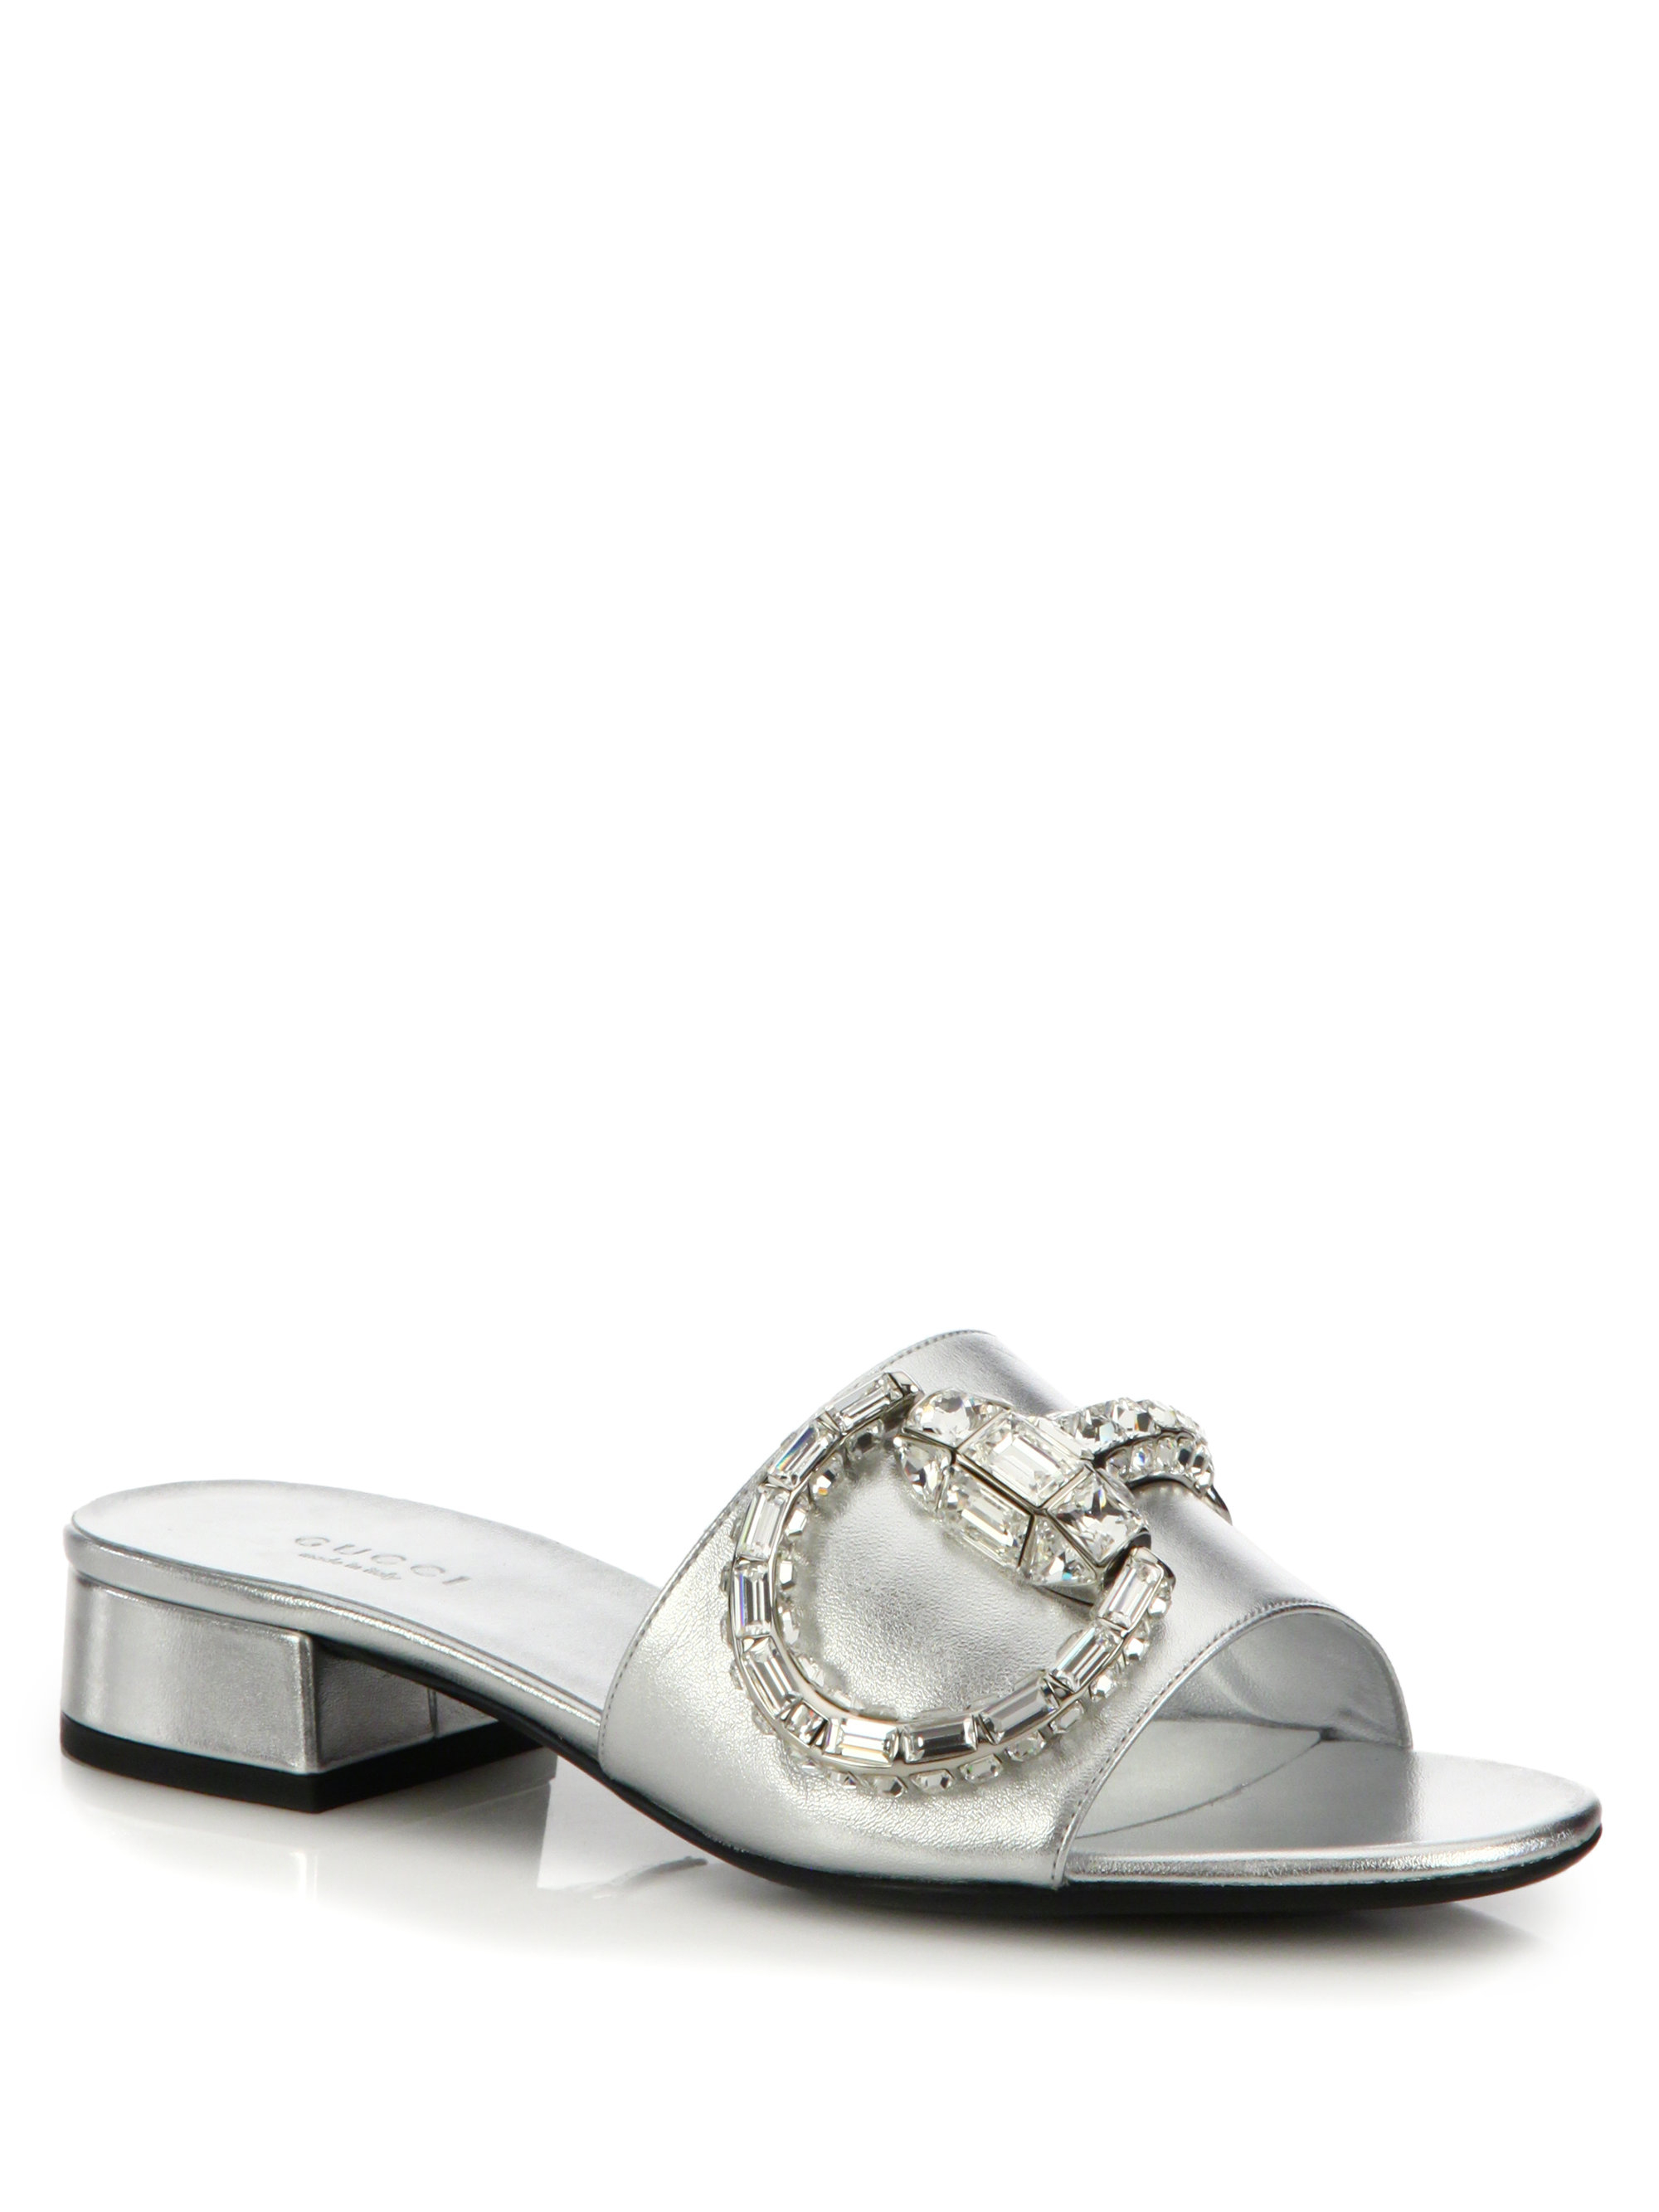 Gucci Maxime Crystal Horesbit Slide Sandals In Metallic Lyst